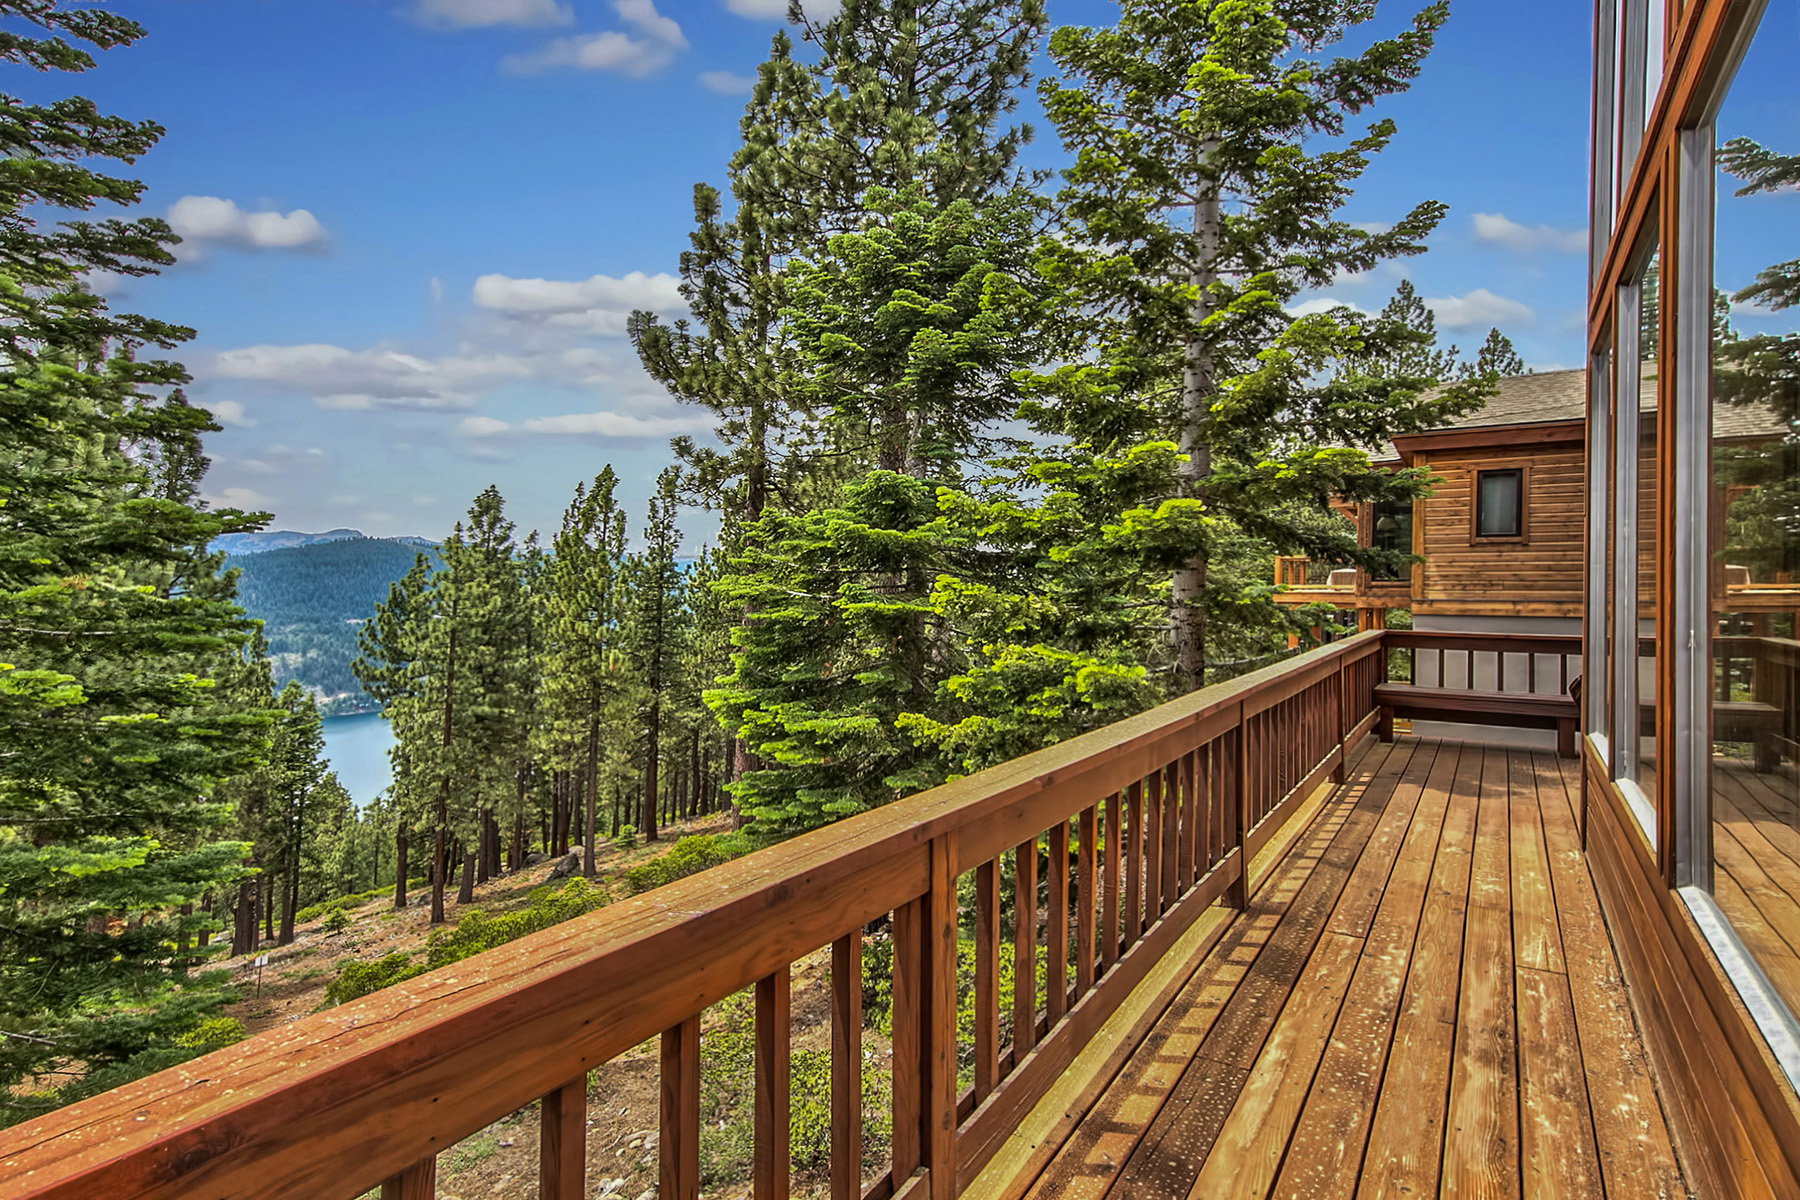 Single Family Home for Active at 11966 Skislope Way Truckee, California 96161 United States